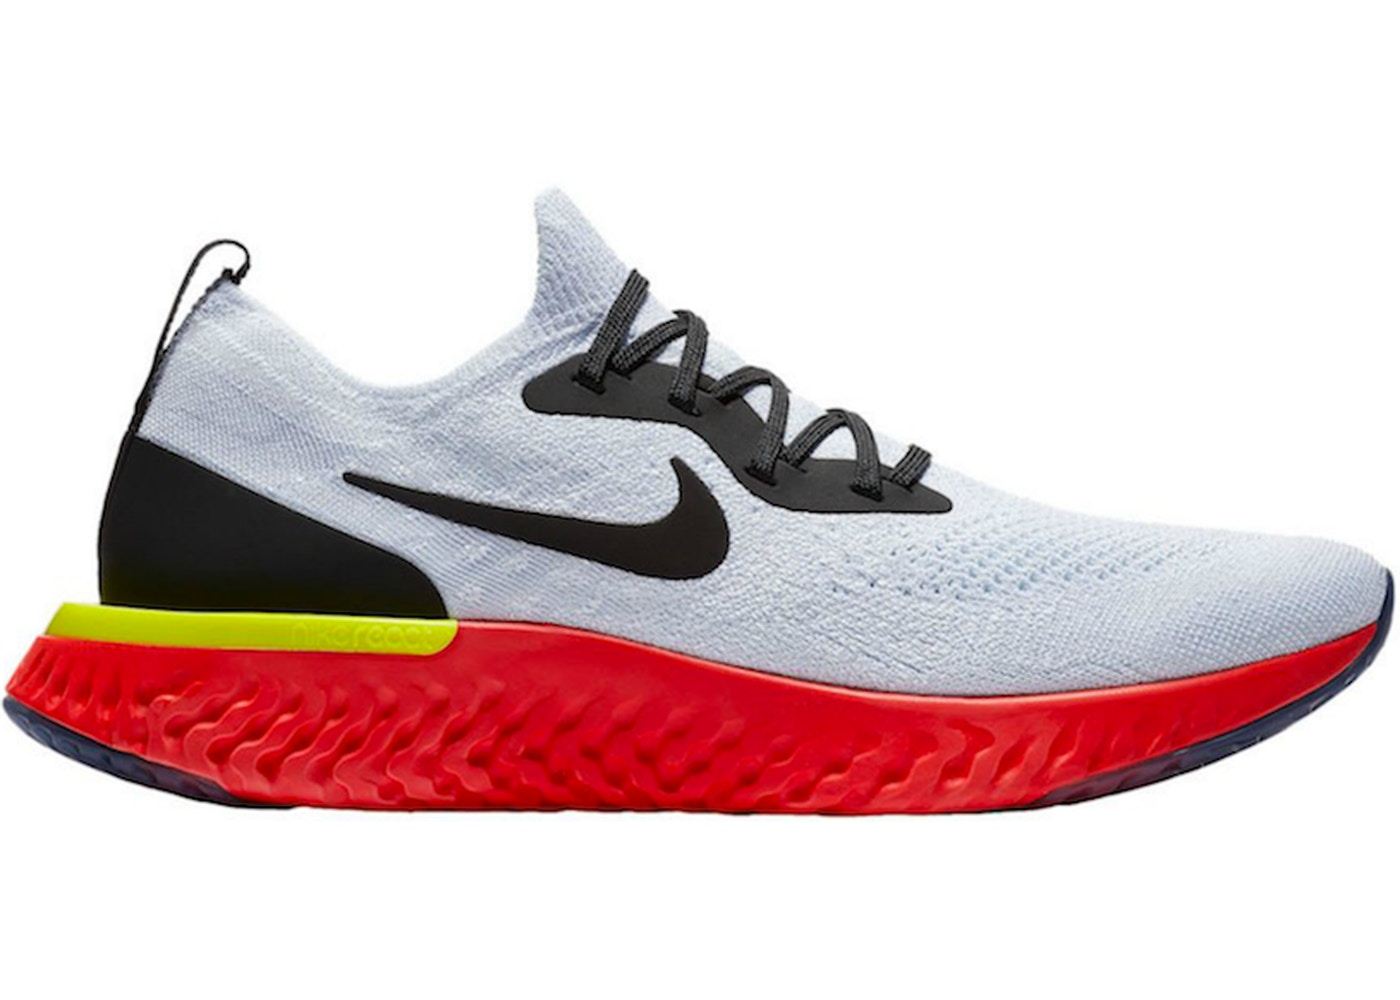 464ffb505934 Nike Epic React Flyknit White Bright Crimson - AQ0067-103